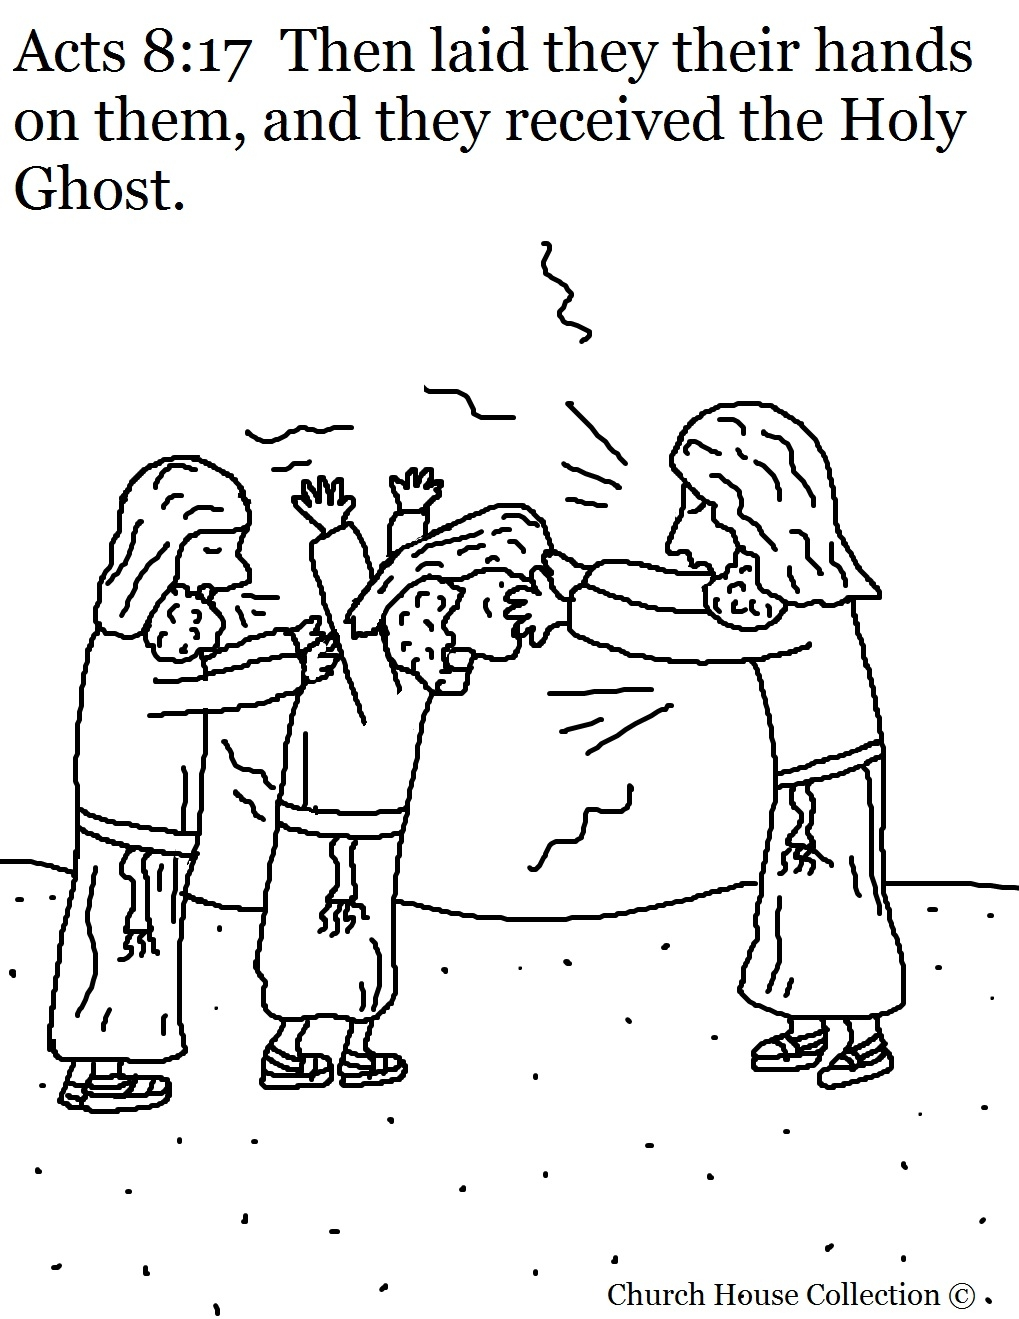 holy ghost coloring page - acts 817 received holy ghost coloring